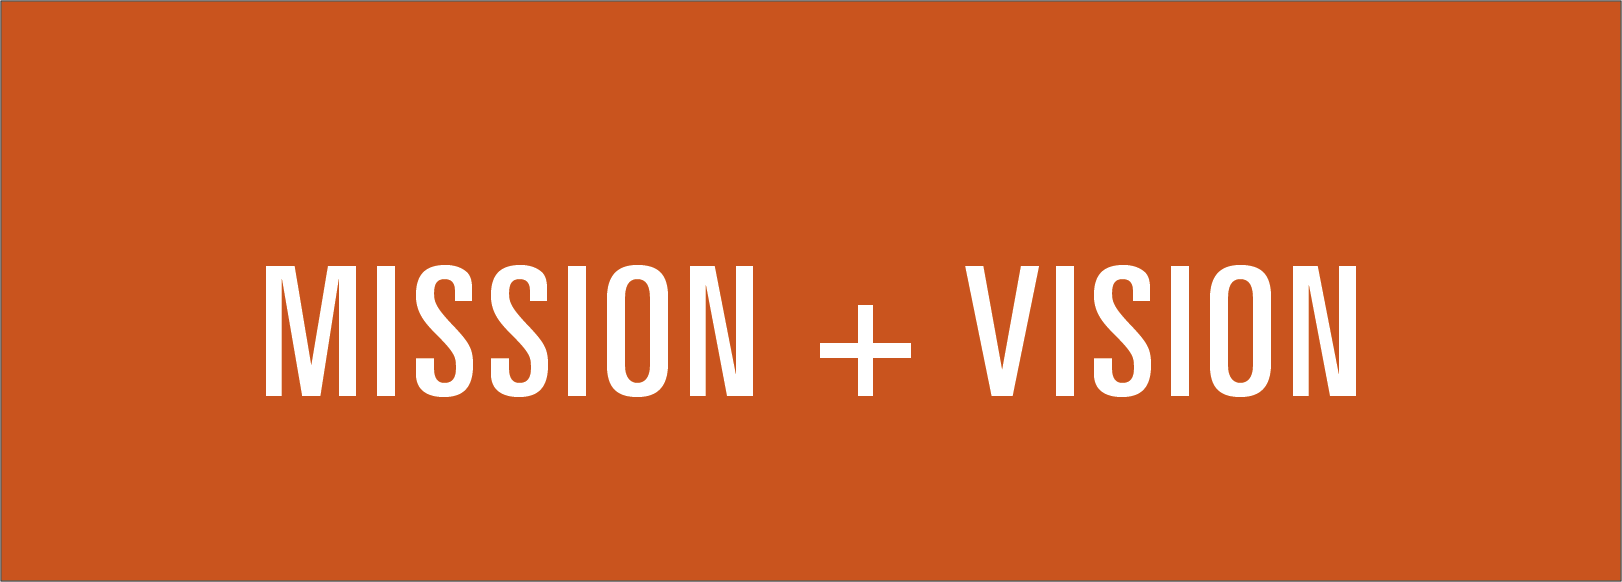 Mission and Vision tile